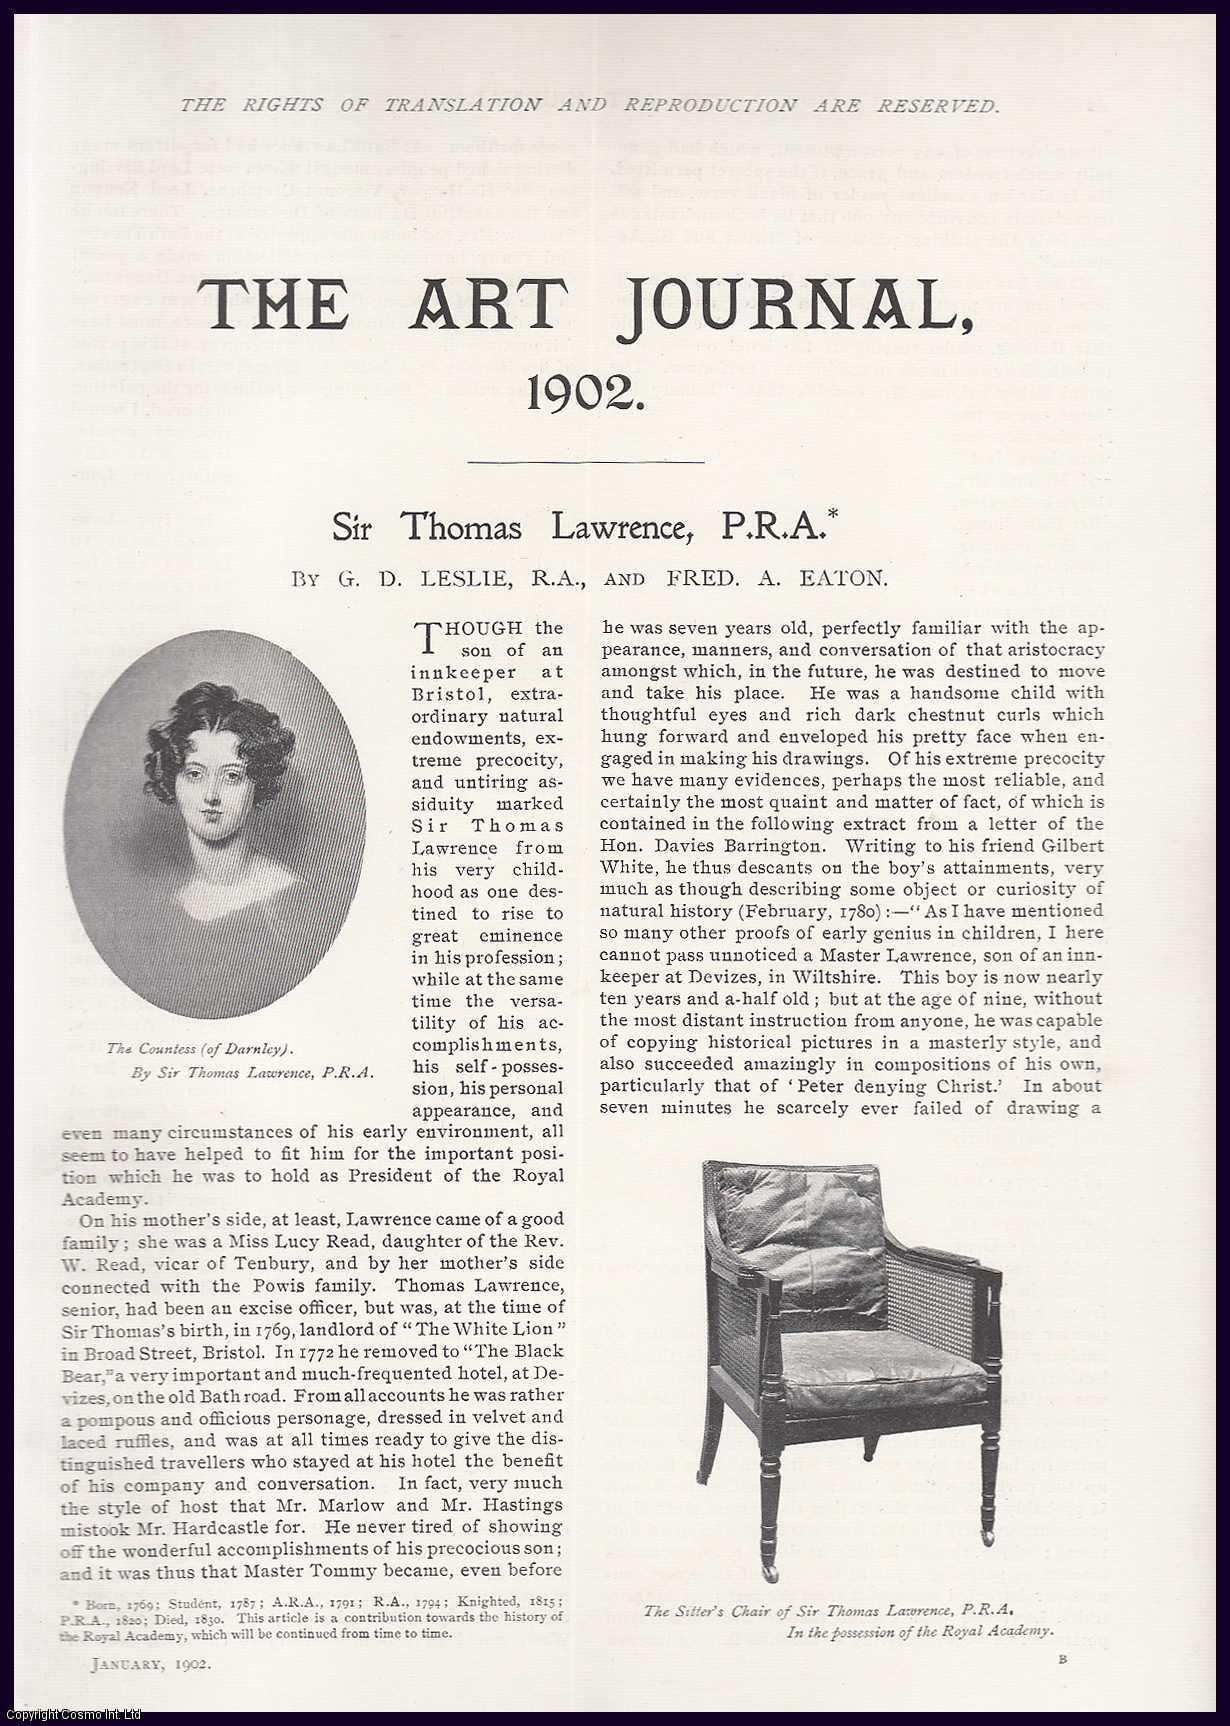 G.D. LESLIE & FRED A. EATON - Sir Thomas Lawrence (Painter). An original article from the The Art journal, 1902.